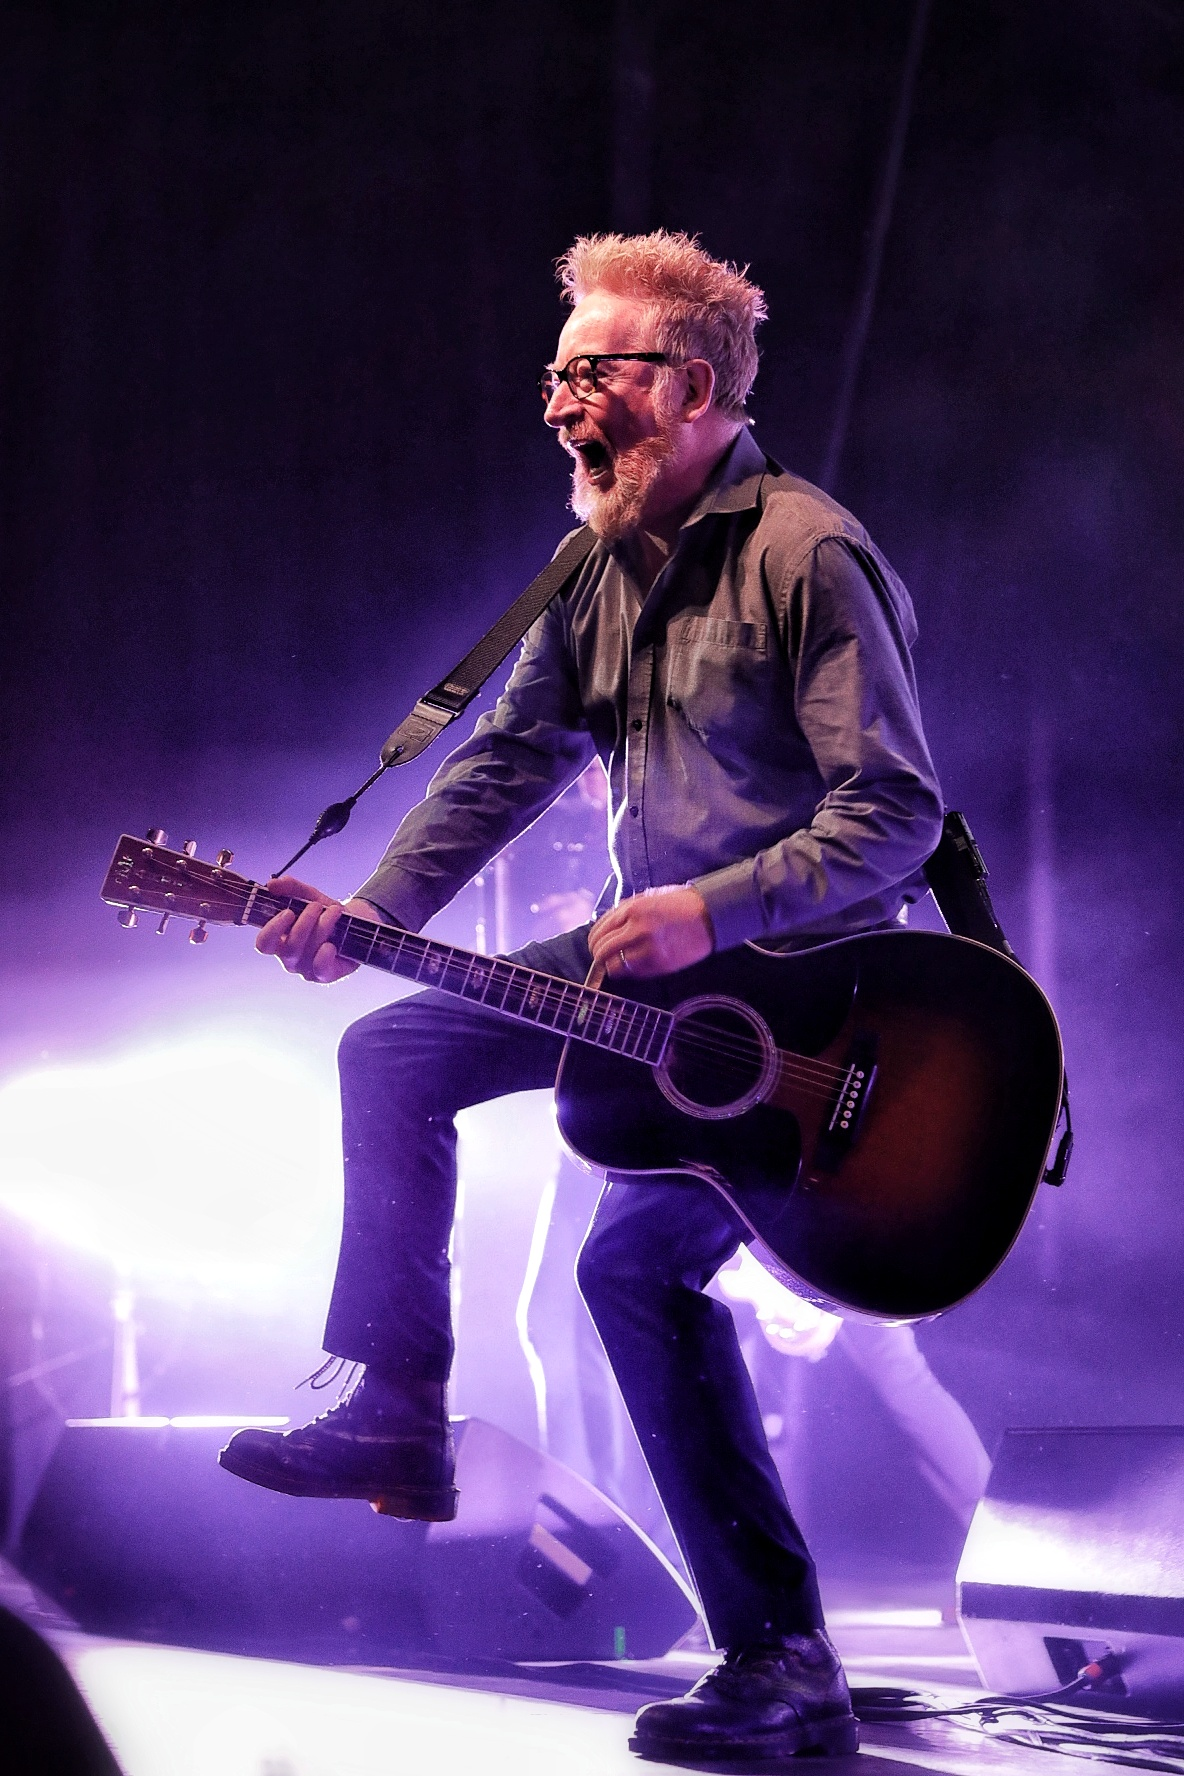 As lively as the band is on stage, the crowd is twice and intense. Flogging Molly's Dave King stomping up a storm at The Complex in SLC. Photo: @Lmsorenson